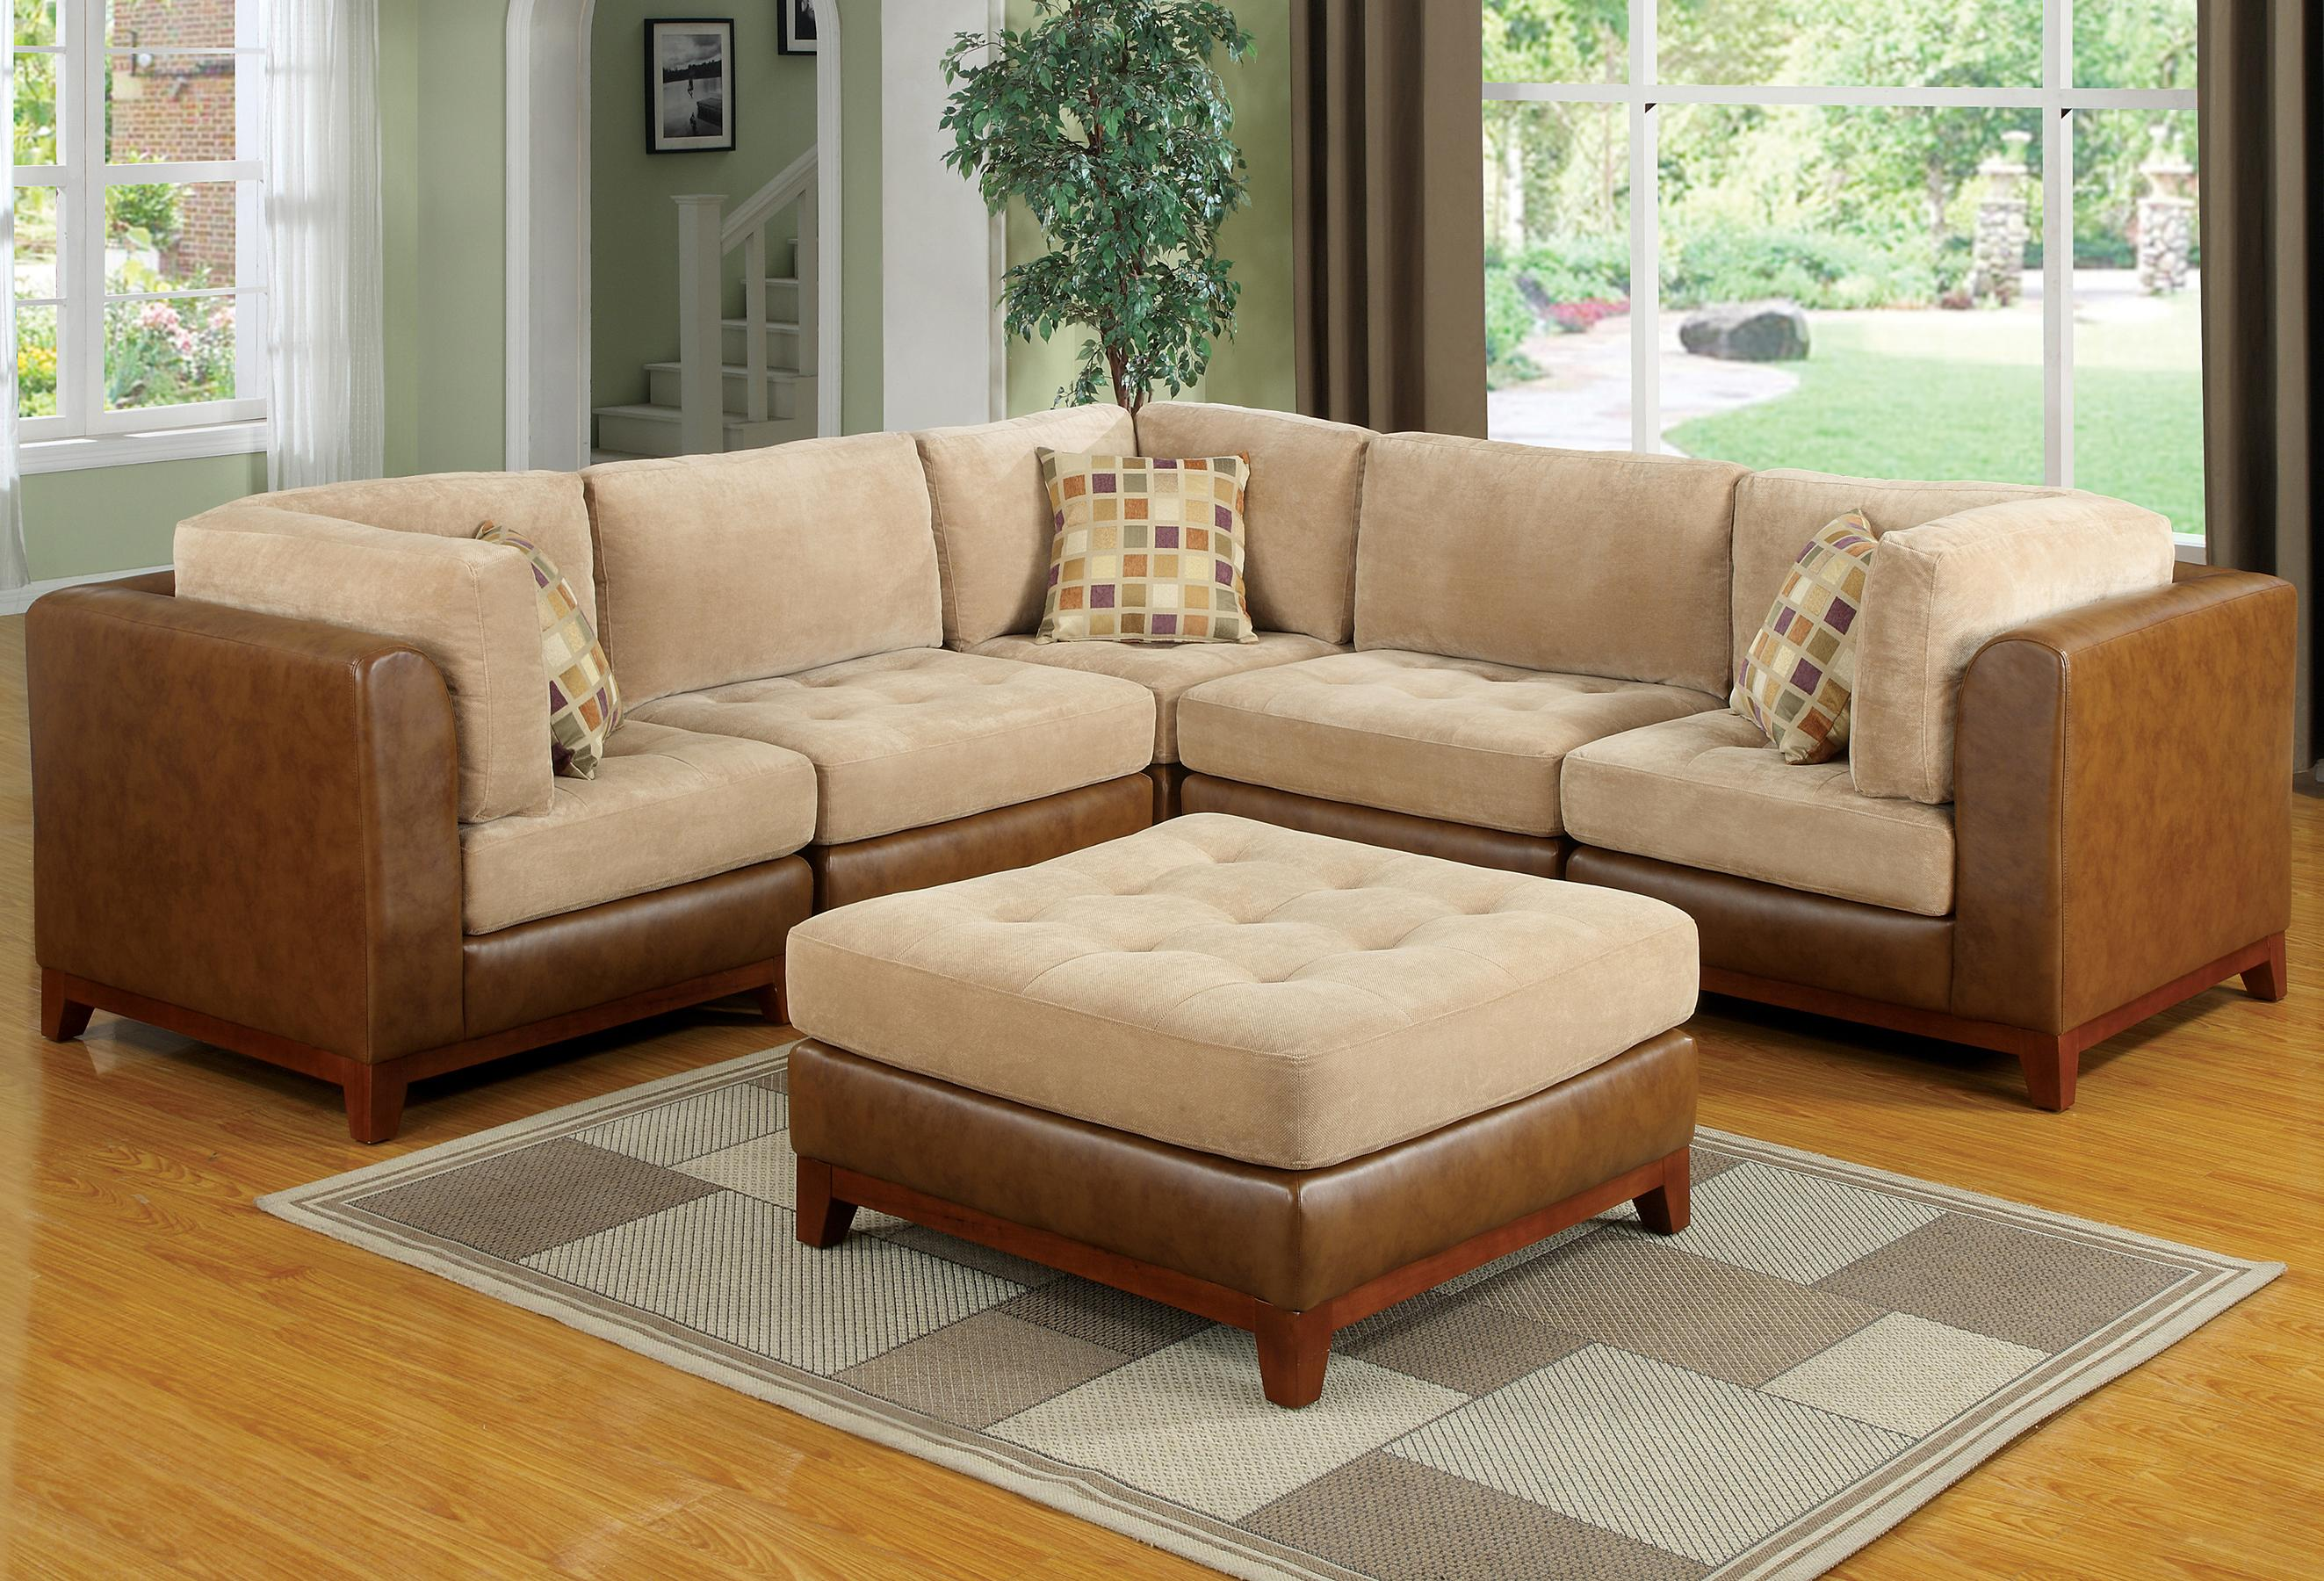 Hamilton Spill Dallas Country Styled Sectional Sofa With